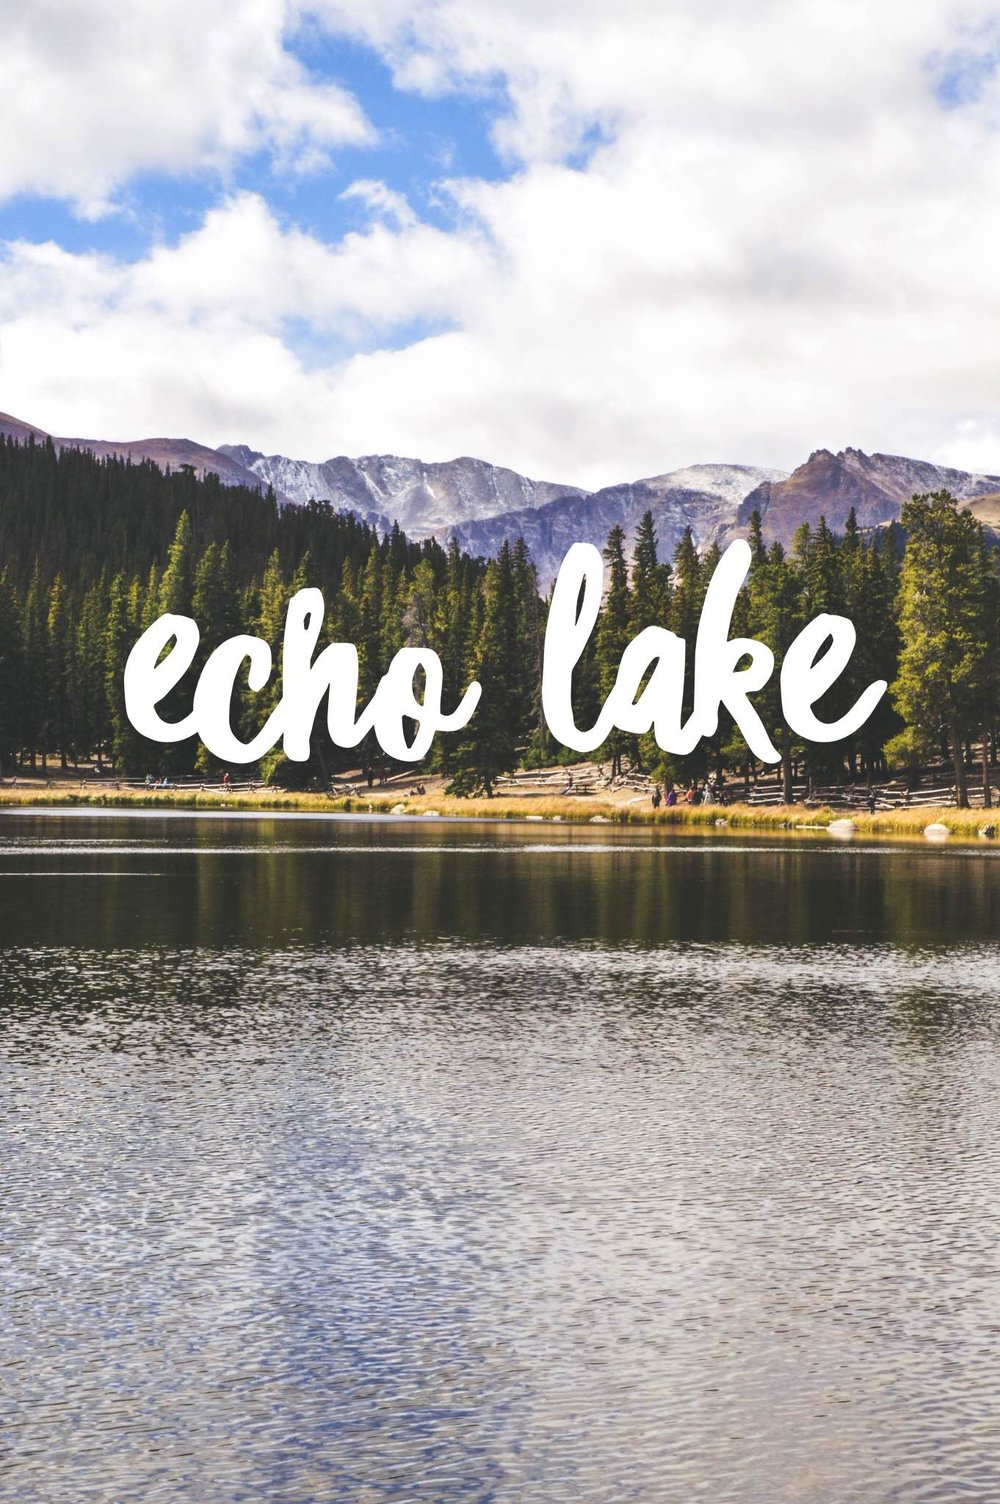 Echo Lake + SaltWaterVibes